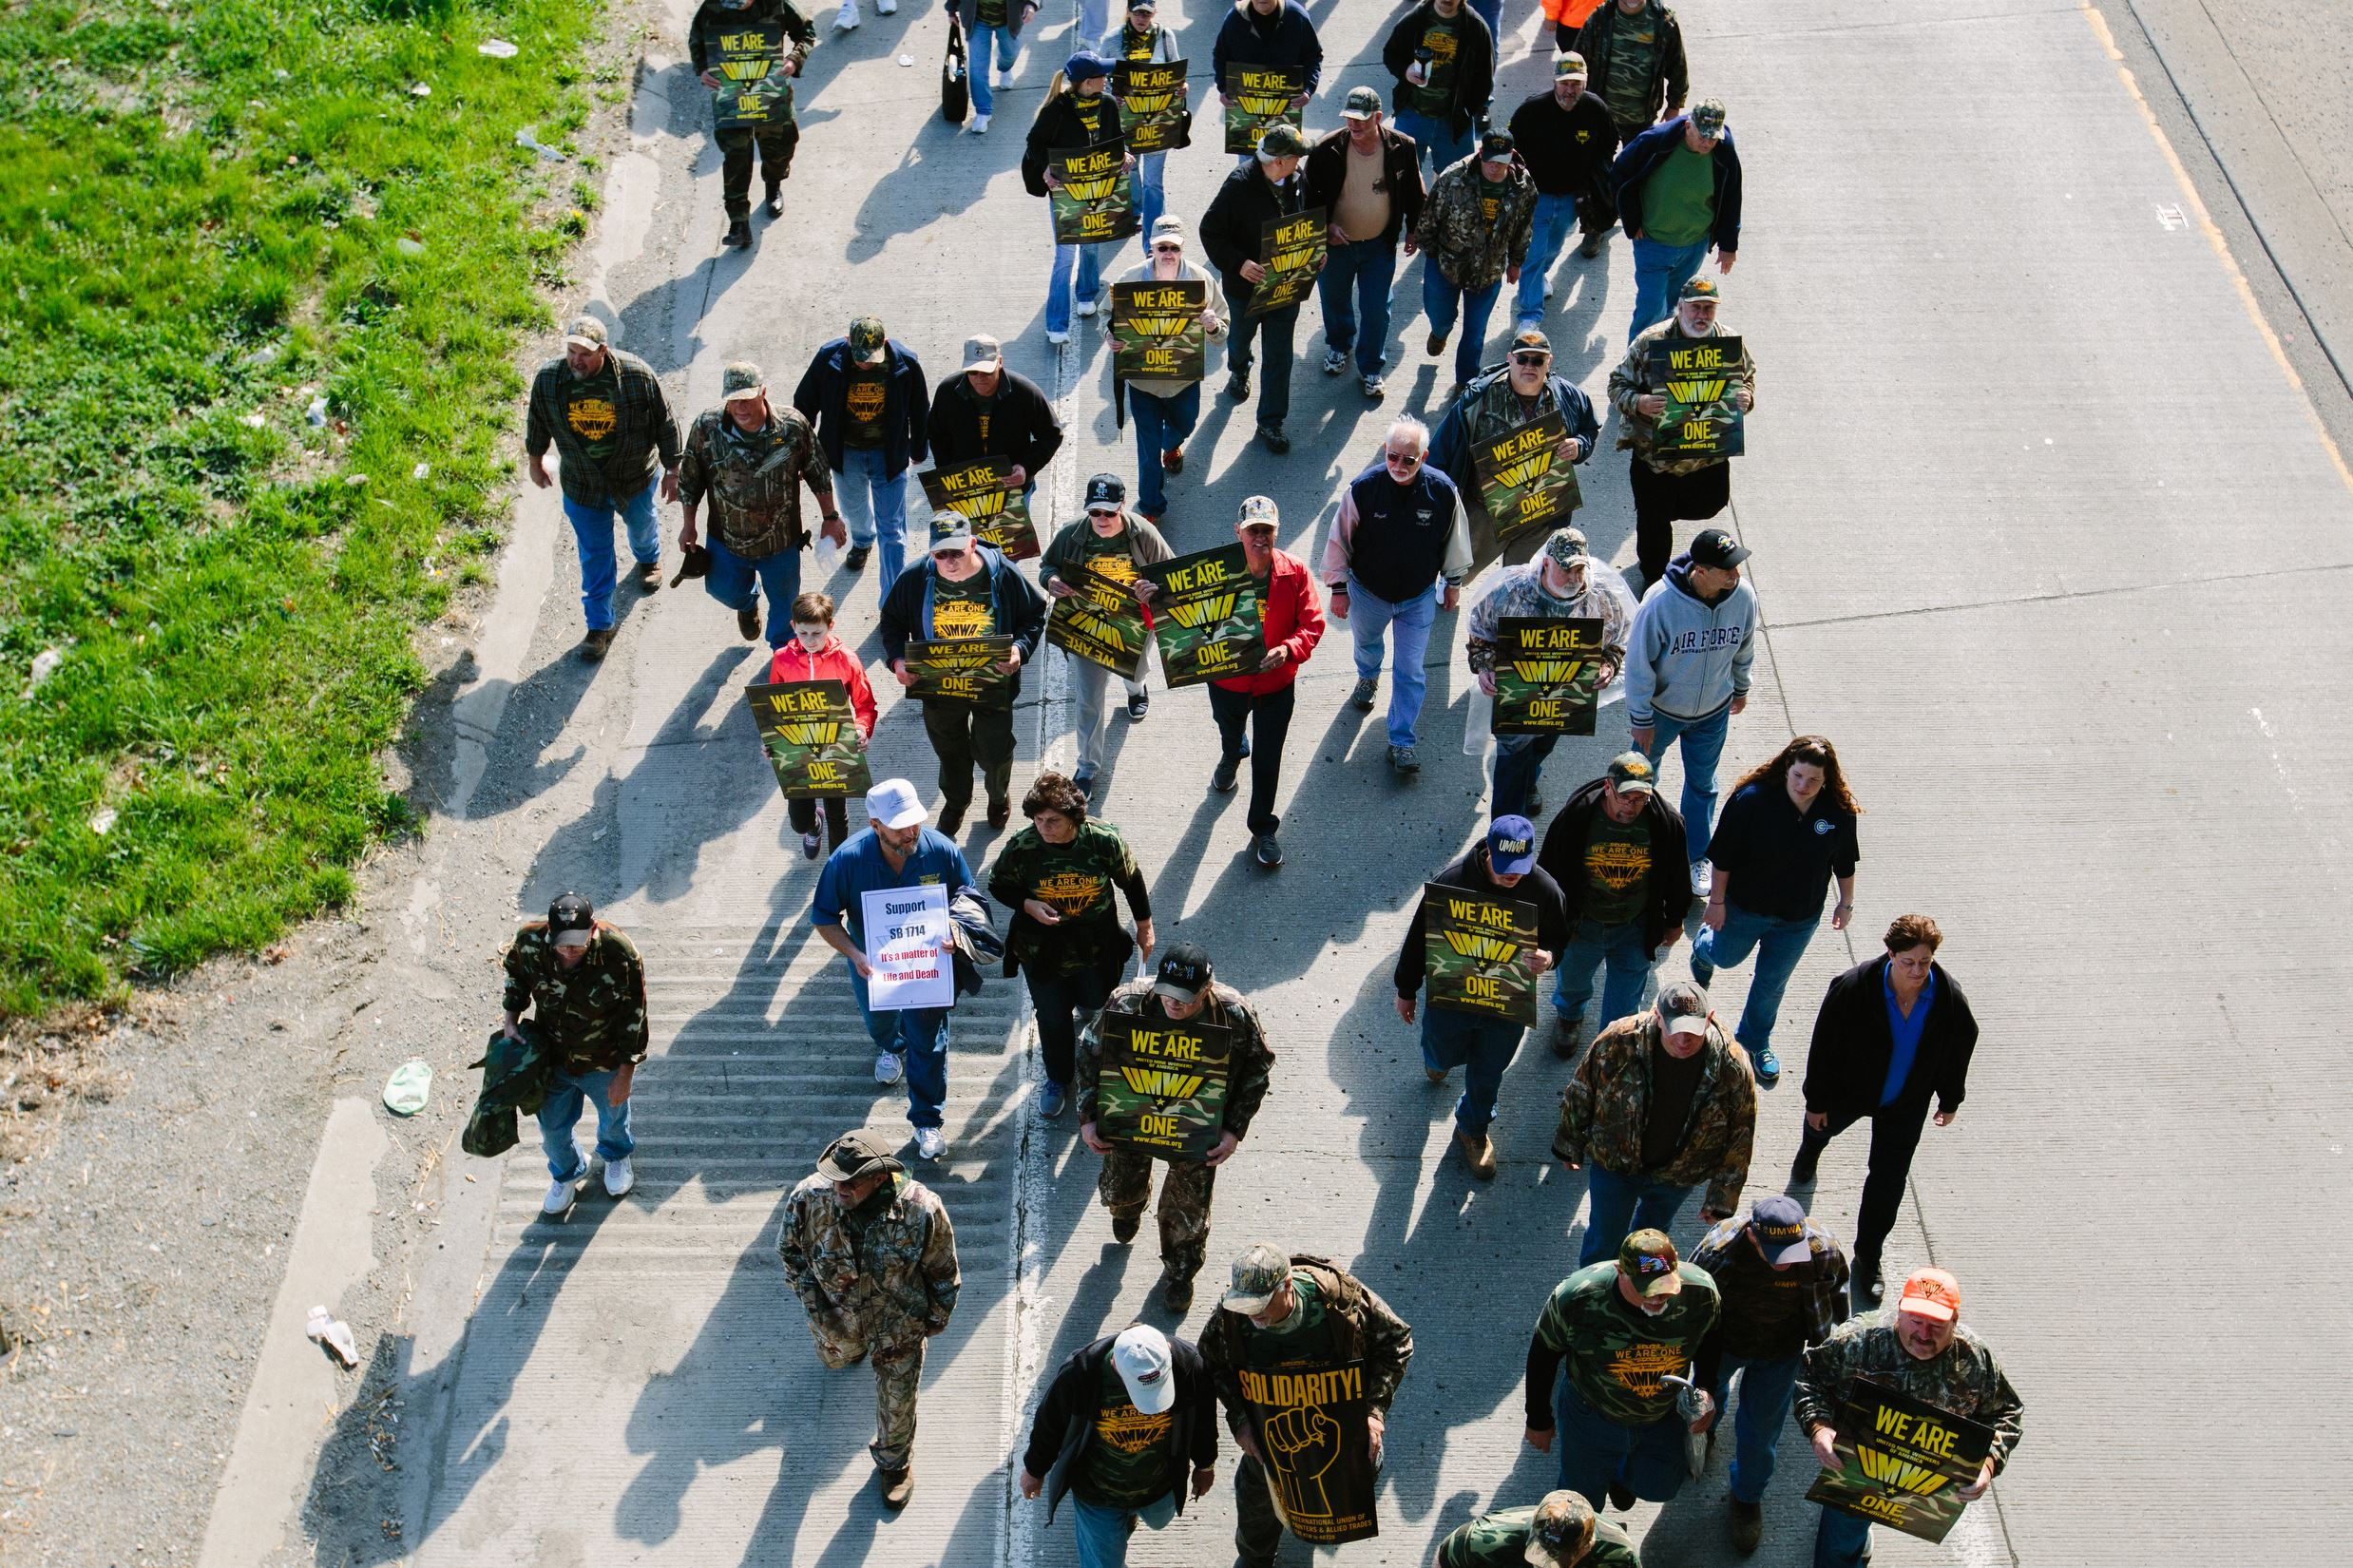 20160401arUMWA-March05-2 Thousands of mine workers and supporters march down E Roy Furman highway in Waynesburg for a rally by the United Mine Workers of America on April 1.